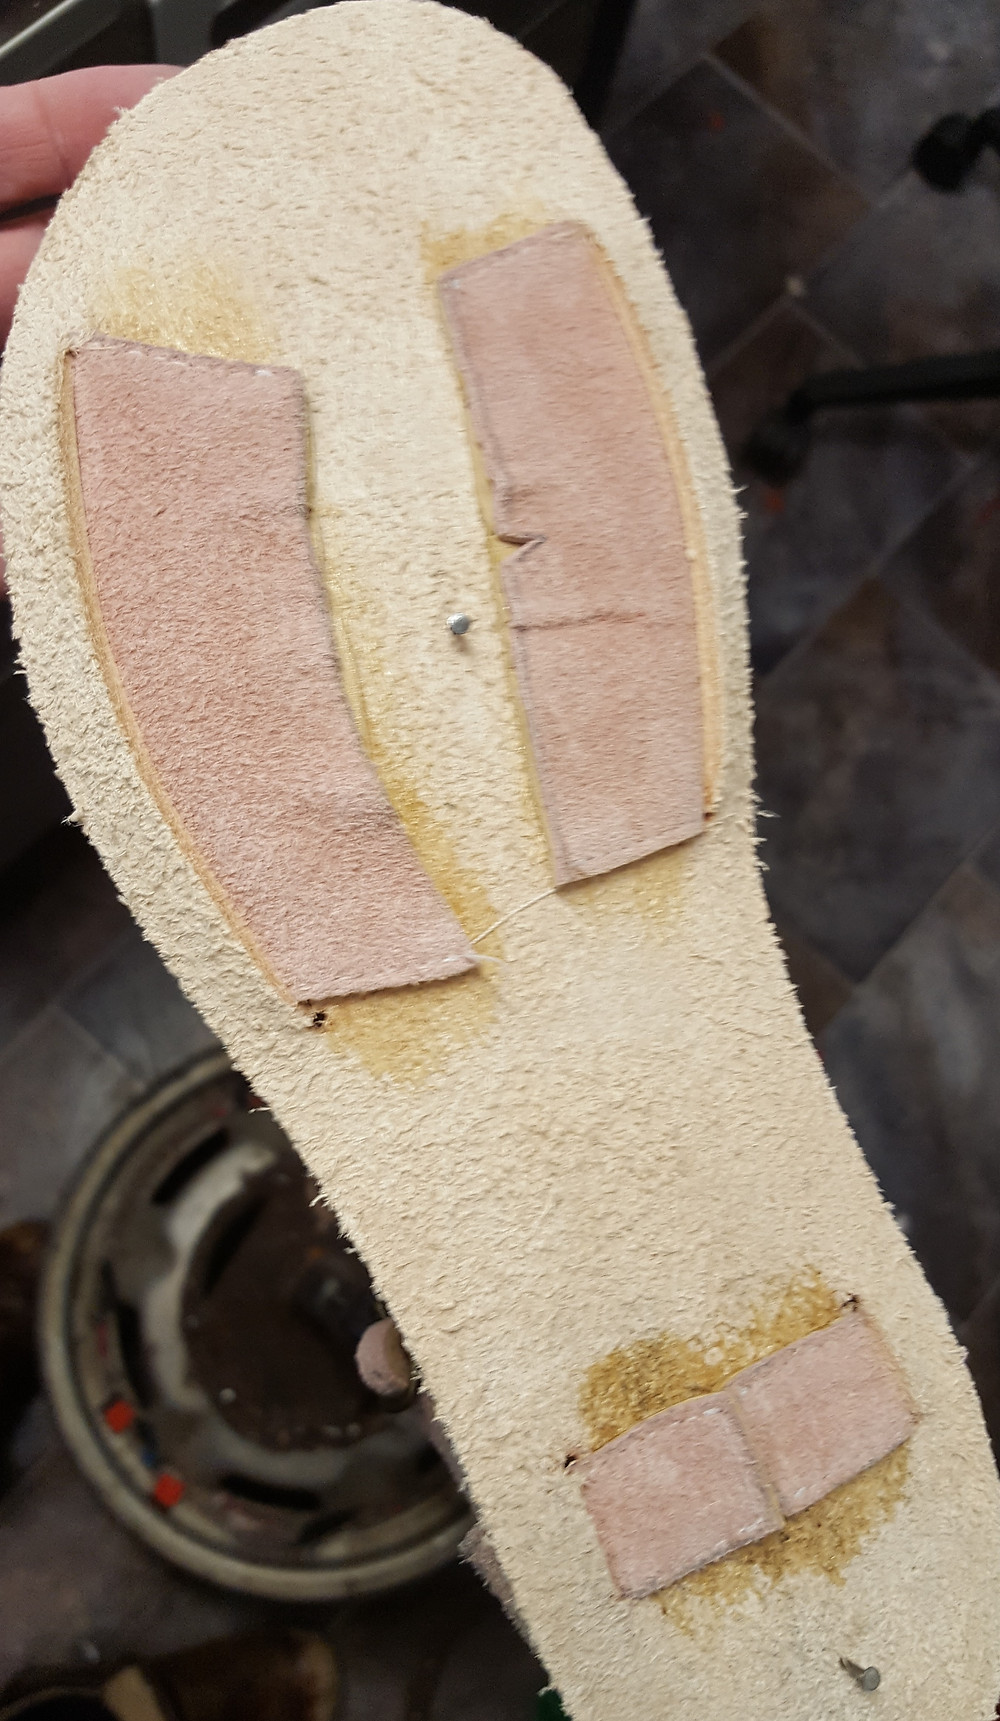 Upper is glued to insole